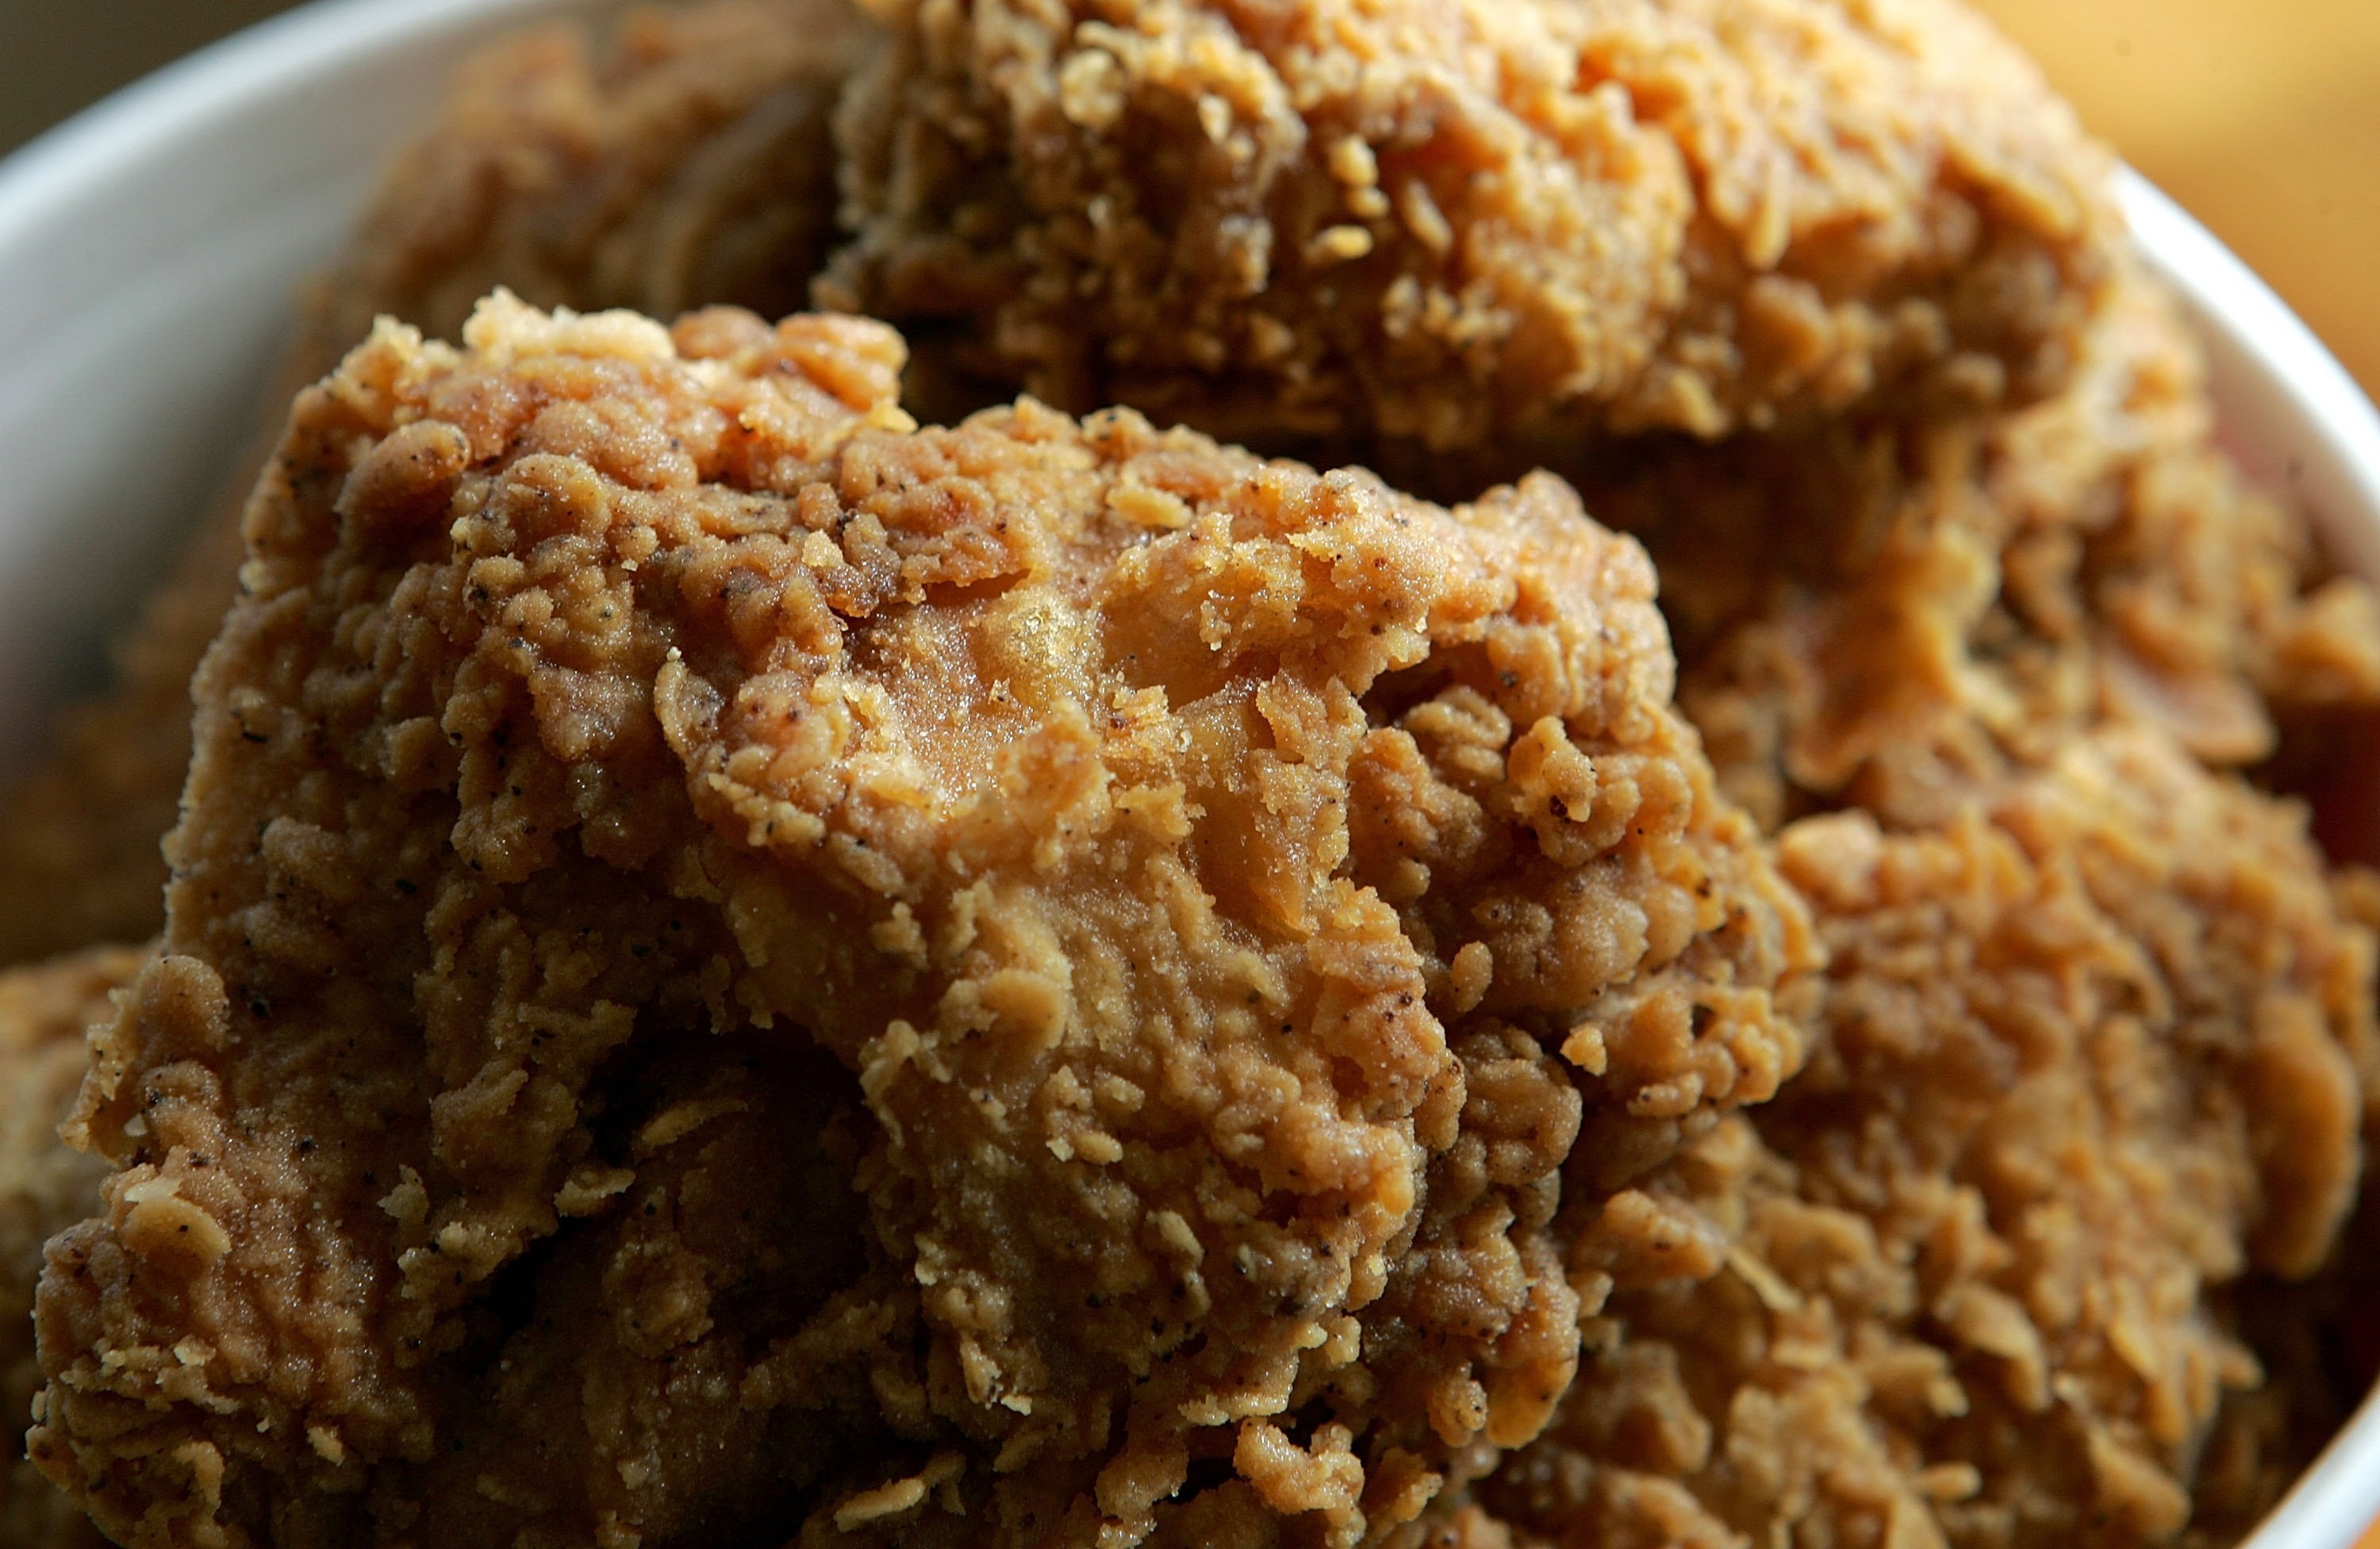 KFC's chicken fried pizza is making a comeback because rules are for suckers